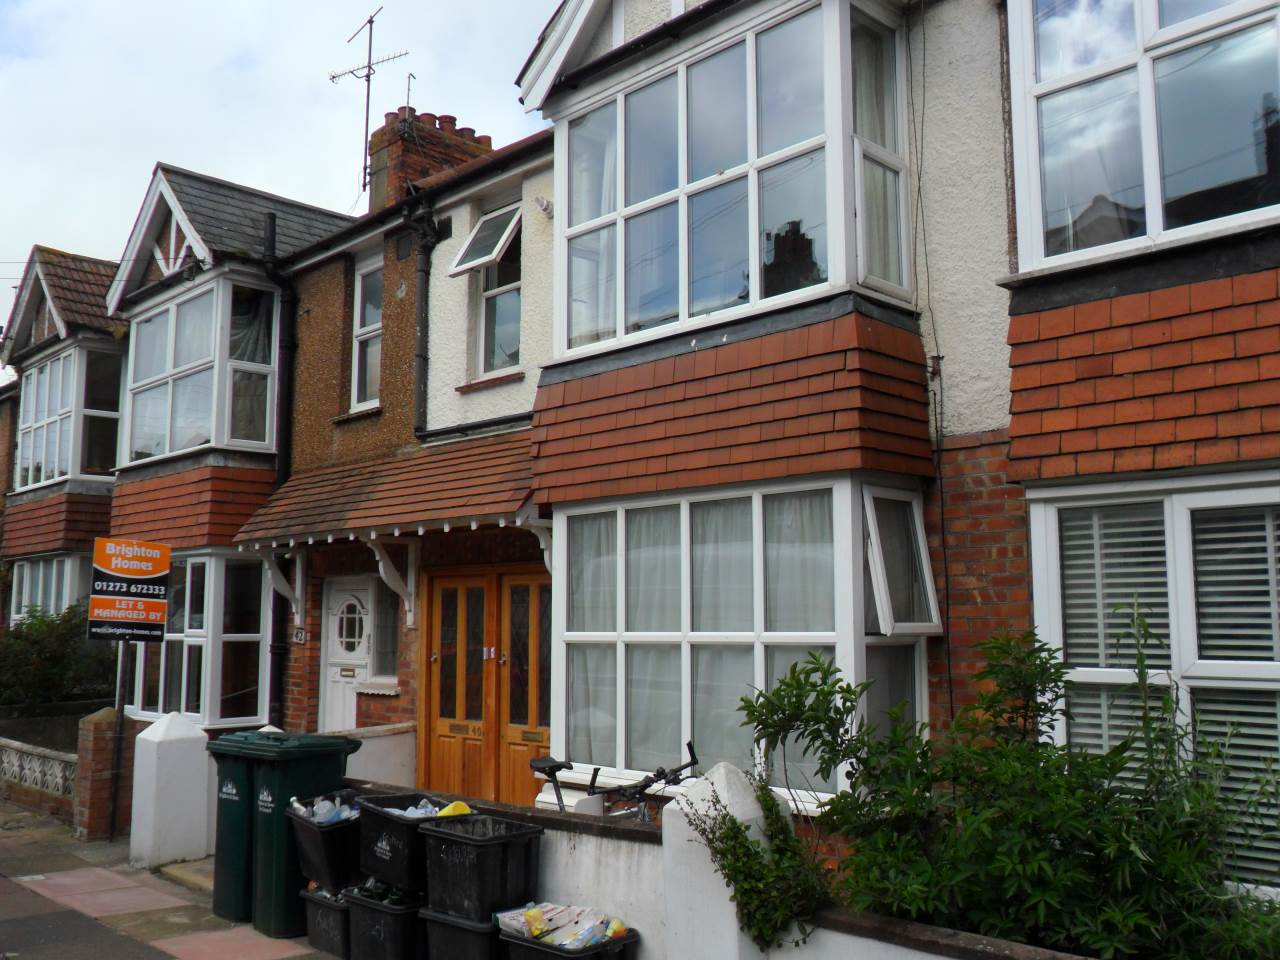 4 bed maisonette to rent in Stanmer Park Road, Brighton, BN1